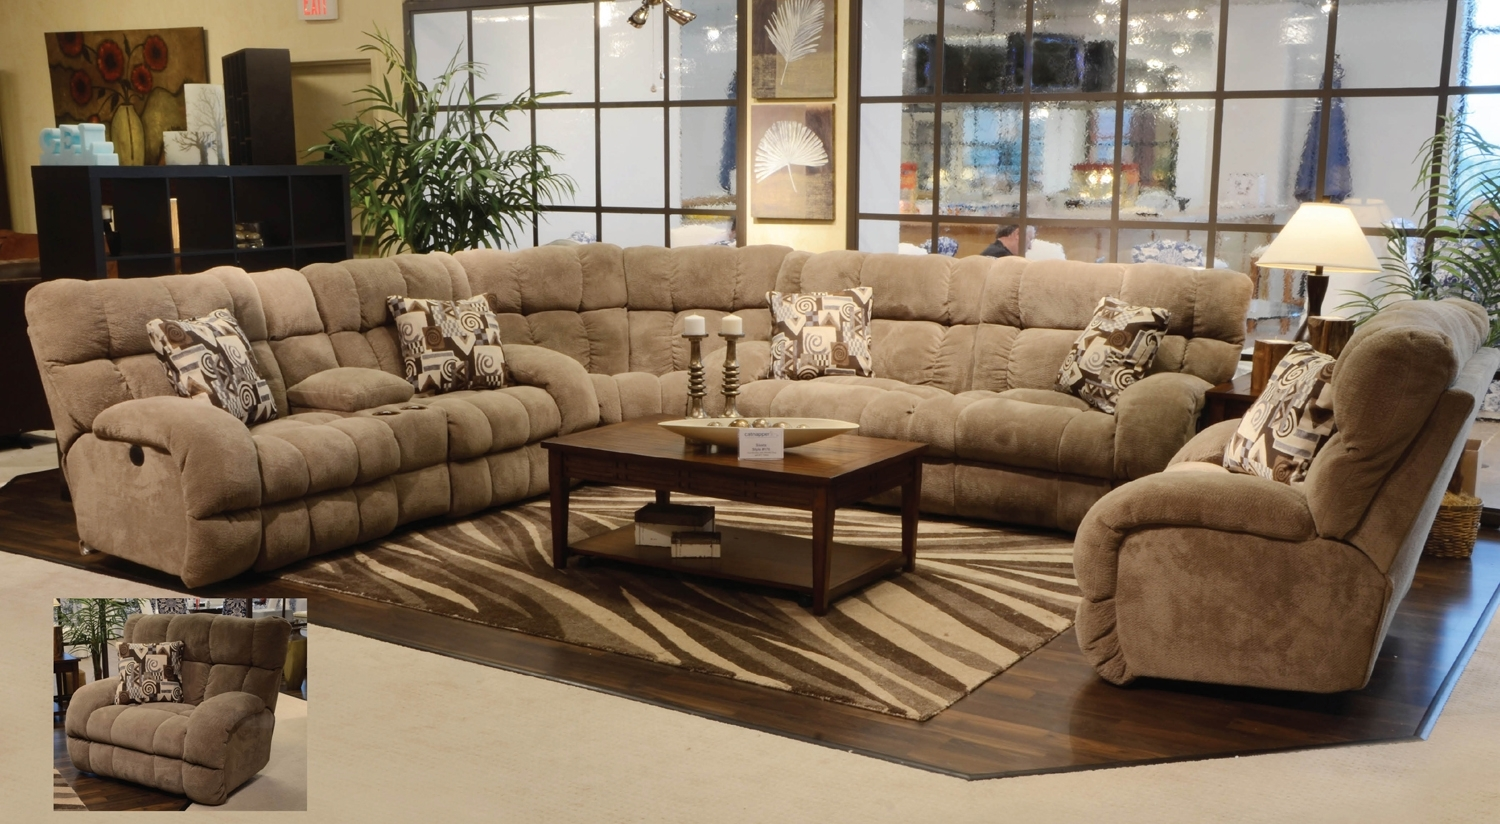 Furniture : Sectional Sofa 110 X 110 Corner Couch Ideas Sectional Within 110X110 Sectional Sofas (View 3 of 10)